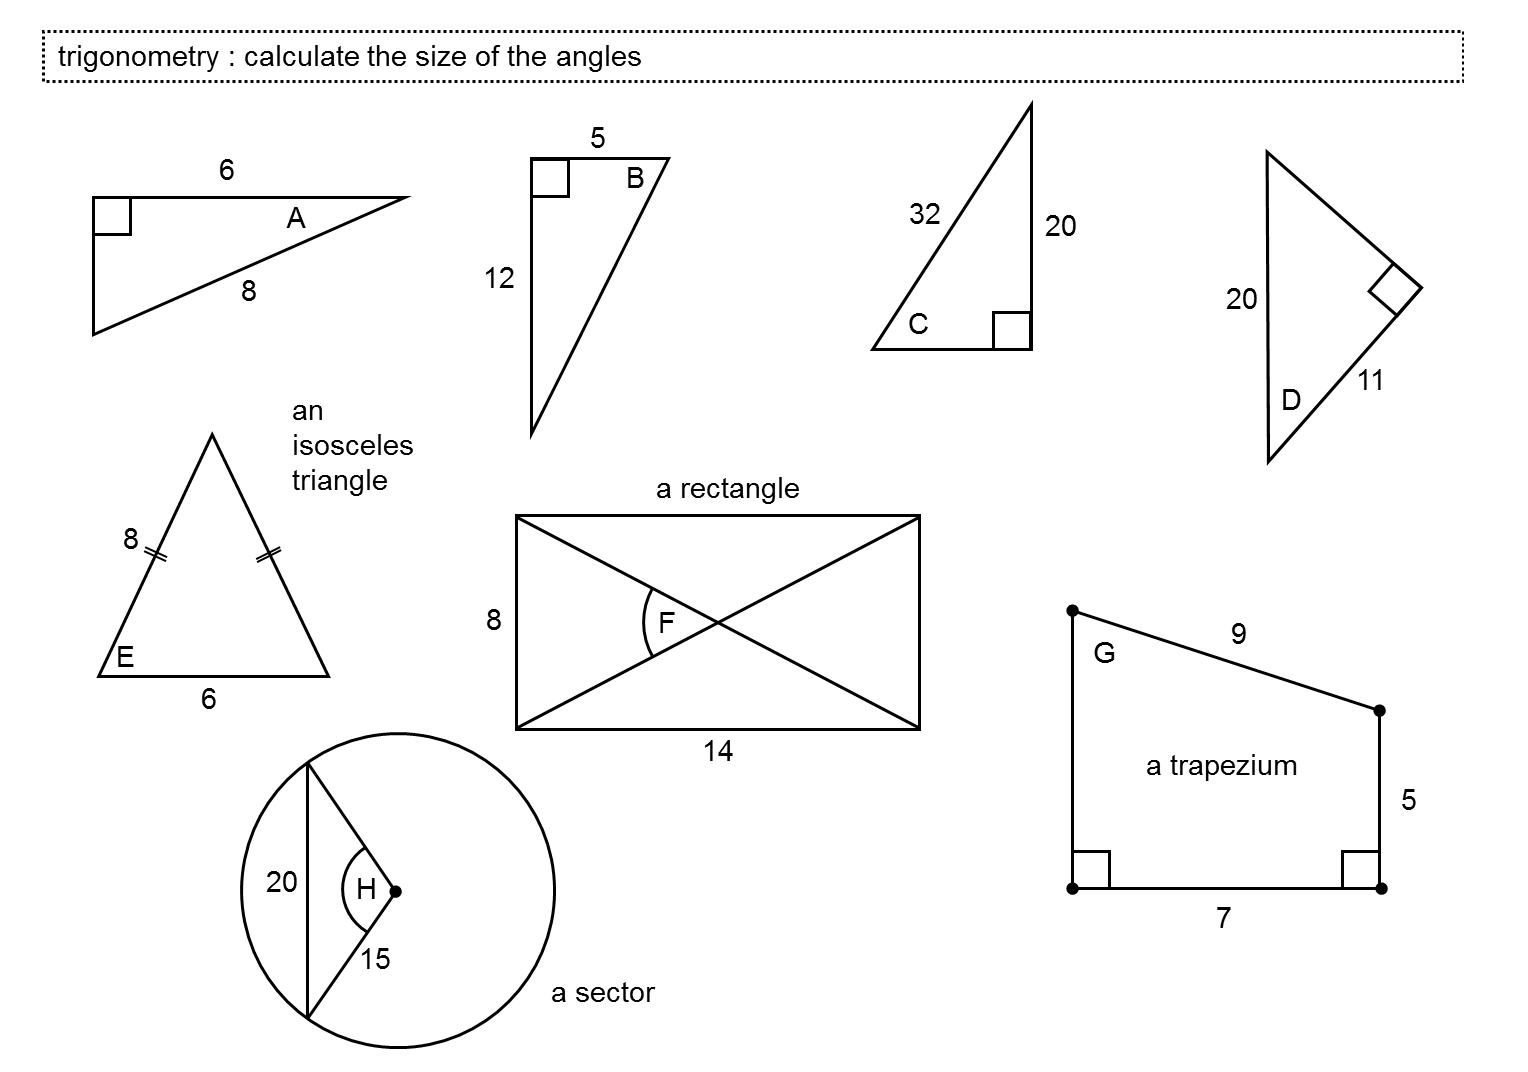 Printables Trig Worksheets trigonometry in right angled triangles miss norledges storeroom calculate angle size don steward